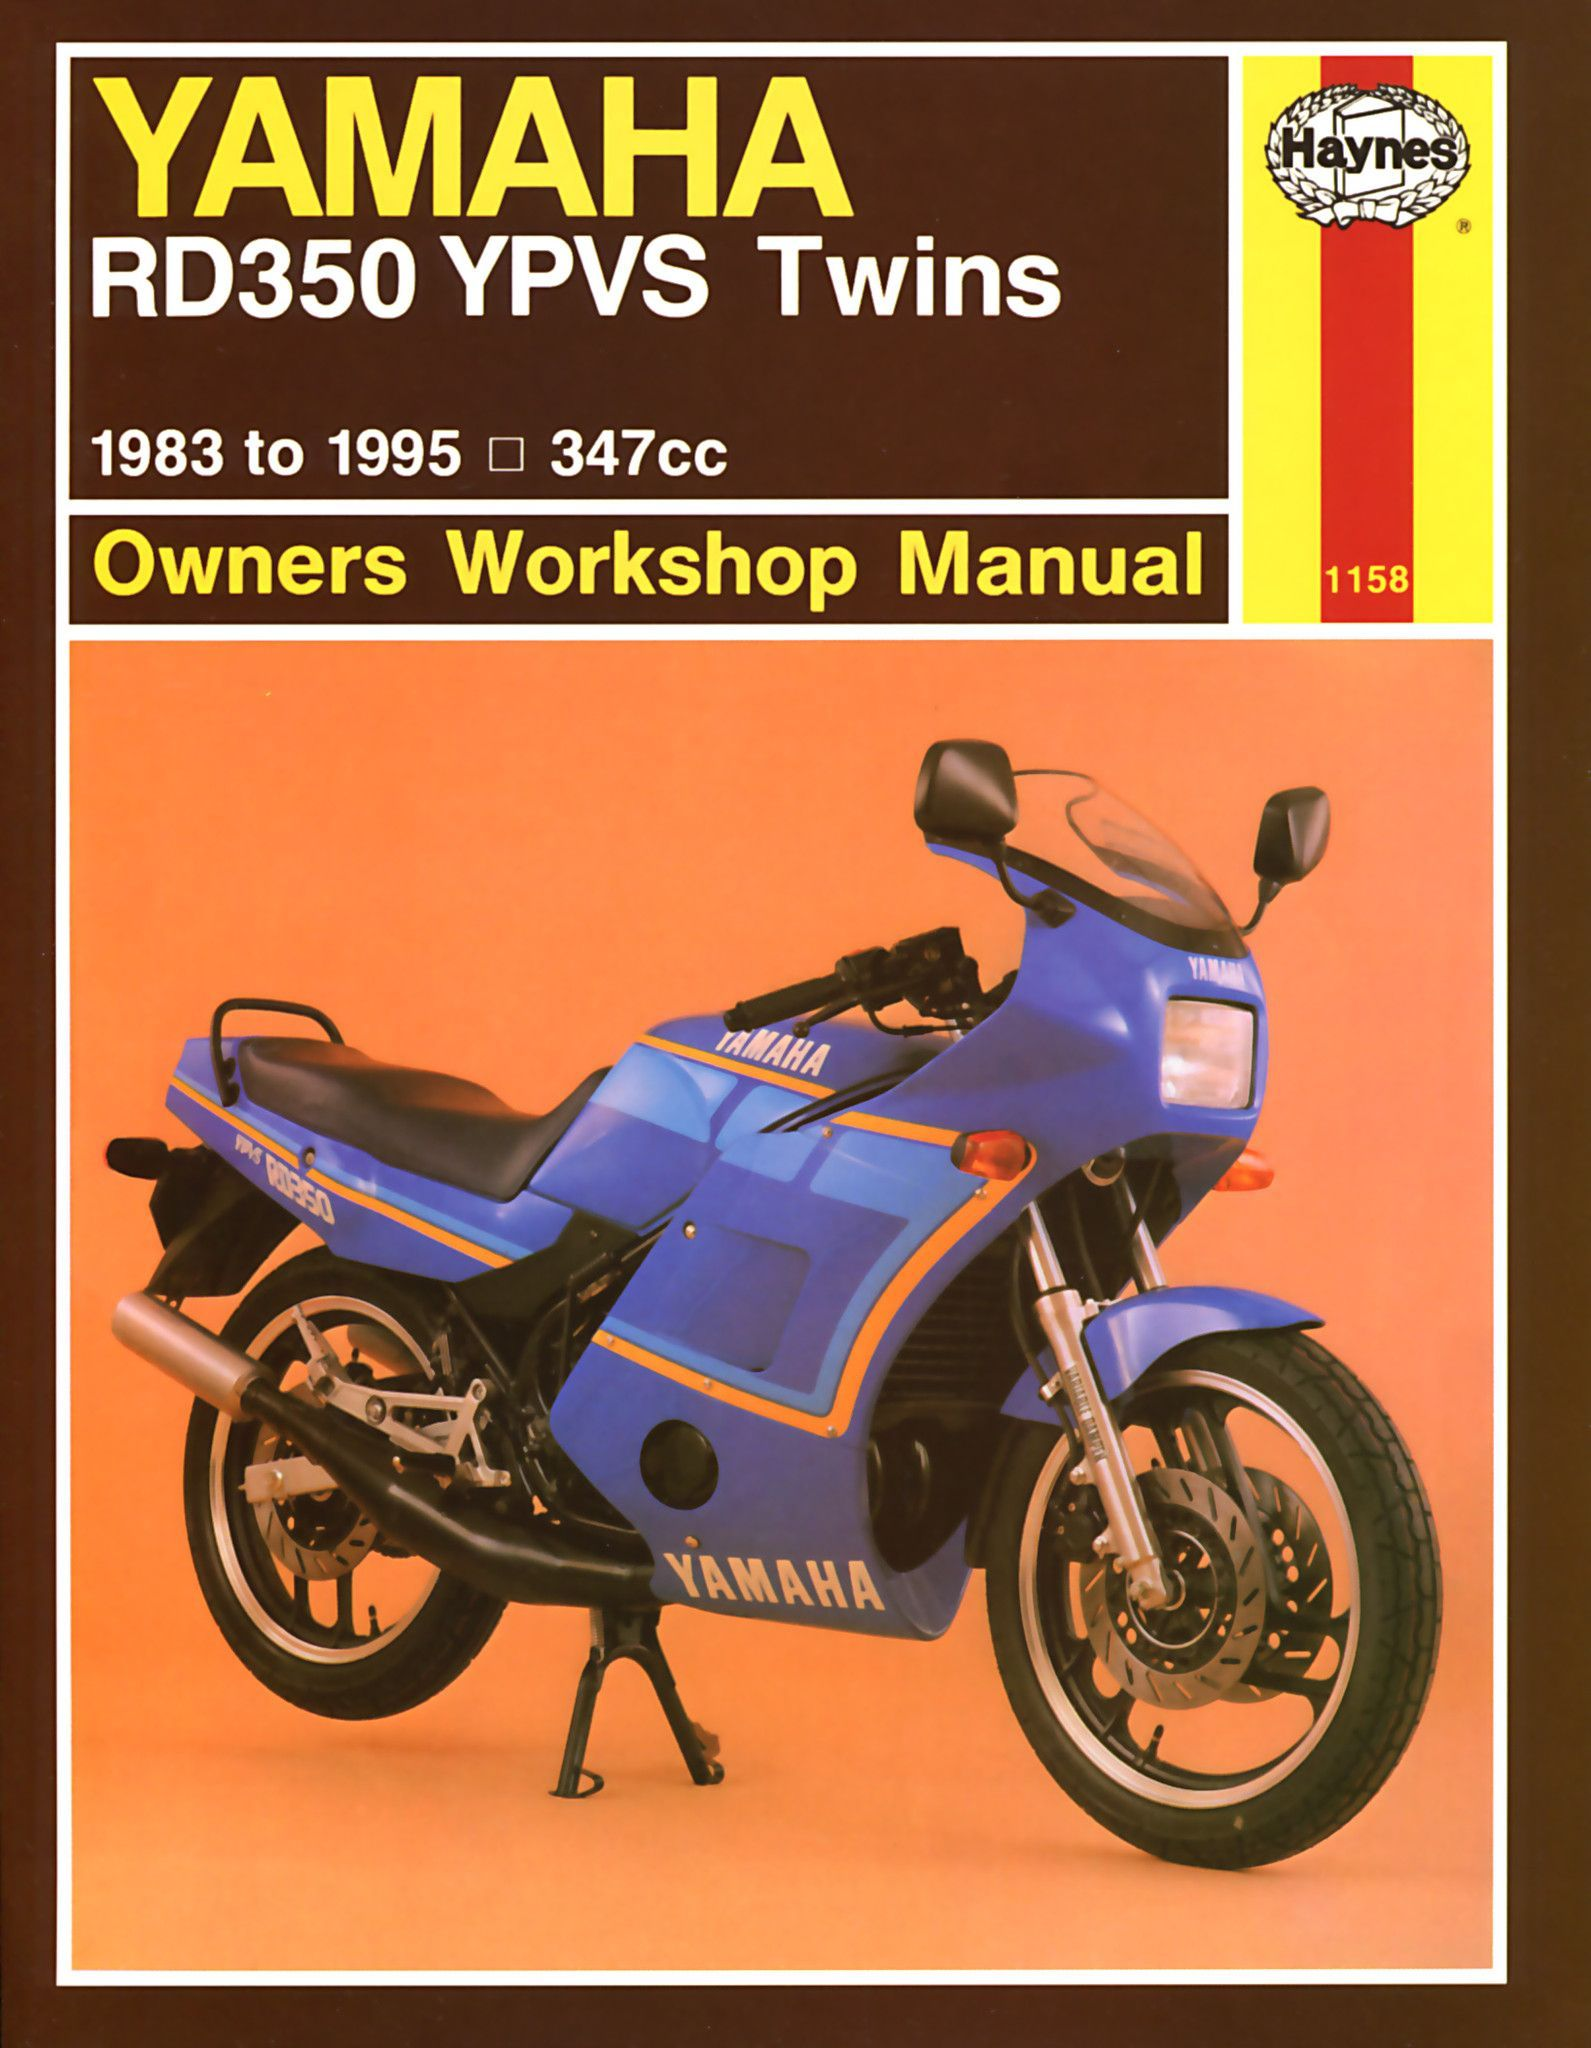 Haynes M1158 Repair Manual for 1983-95 Yamaha RD350 YPVS Twins 347cc models